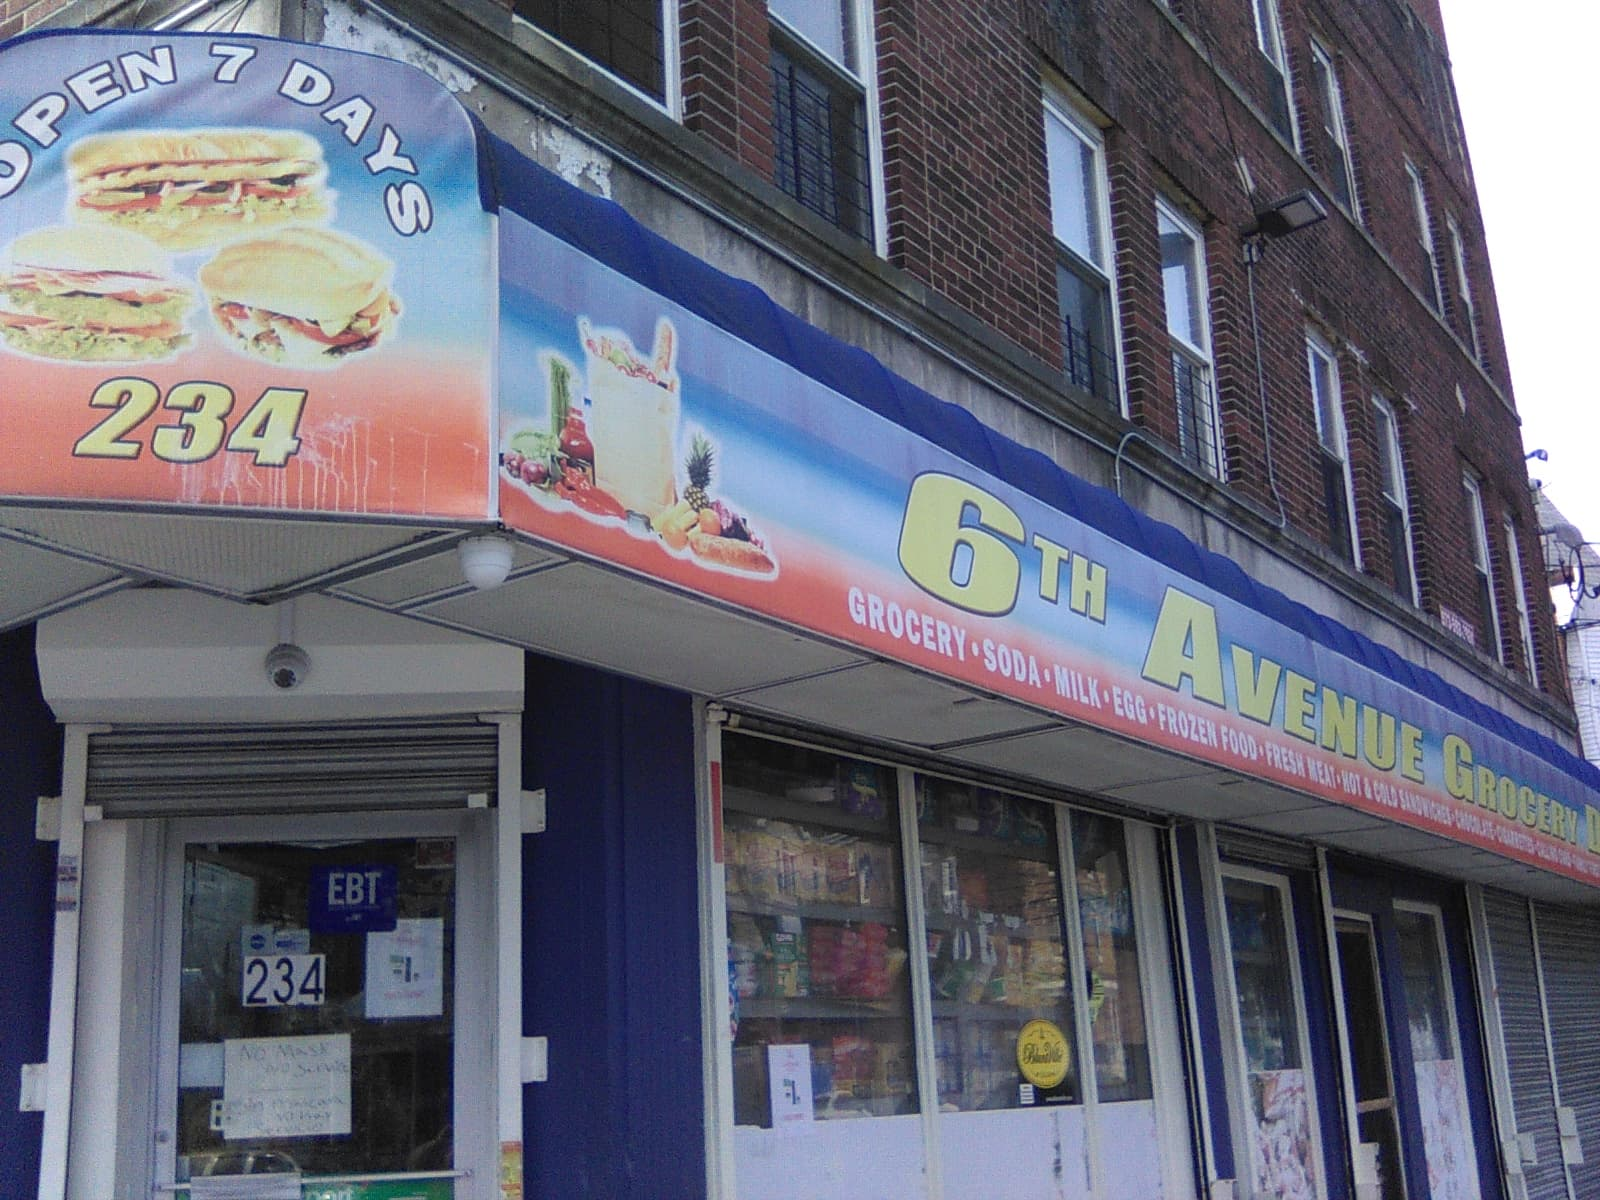 'The community treats us well': This 15-year-old deli is a Newark local treasure